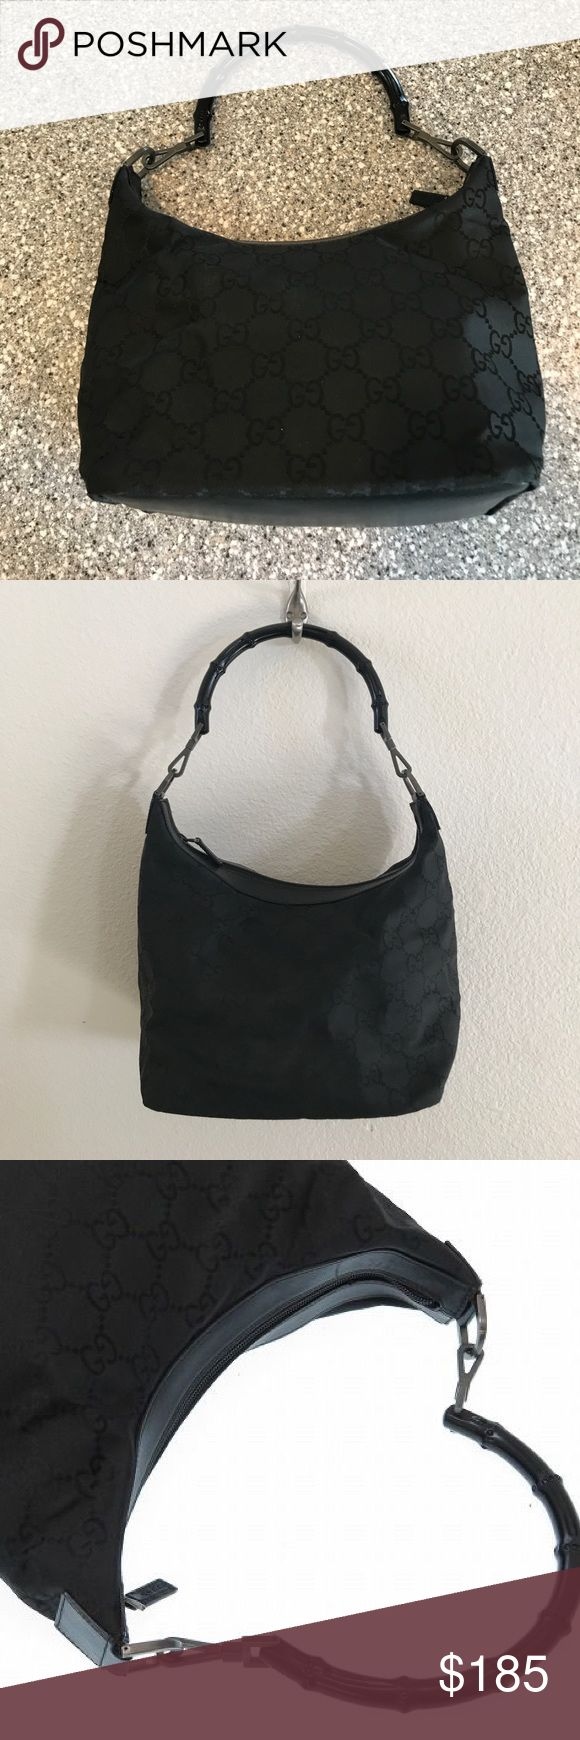 Authentic Gucci Bamboo Purse Used and in amazing condition. Only sign of use is a couple of minor scratches on the bottom of the bag. Lighting is hard to get an awesome picture of this stunning bag. It's super pretty. Medium sized Tote with tones of room in it. I don't do silly lowball offers and I never trade. Gucci Bags